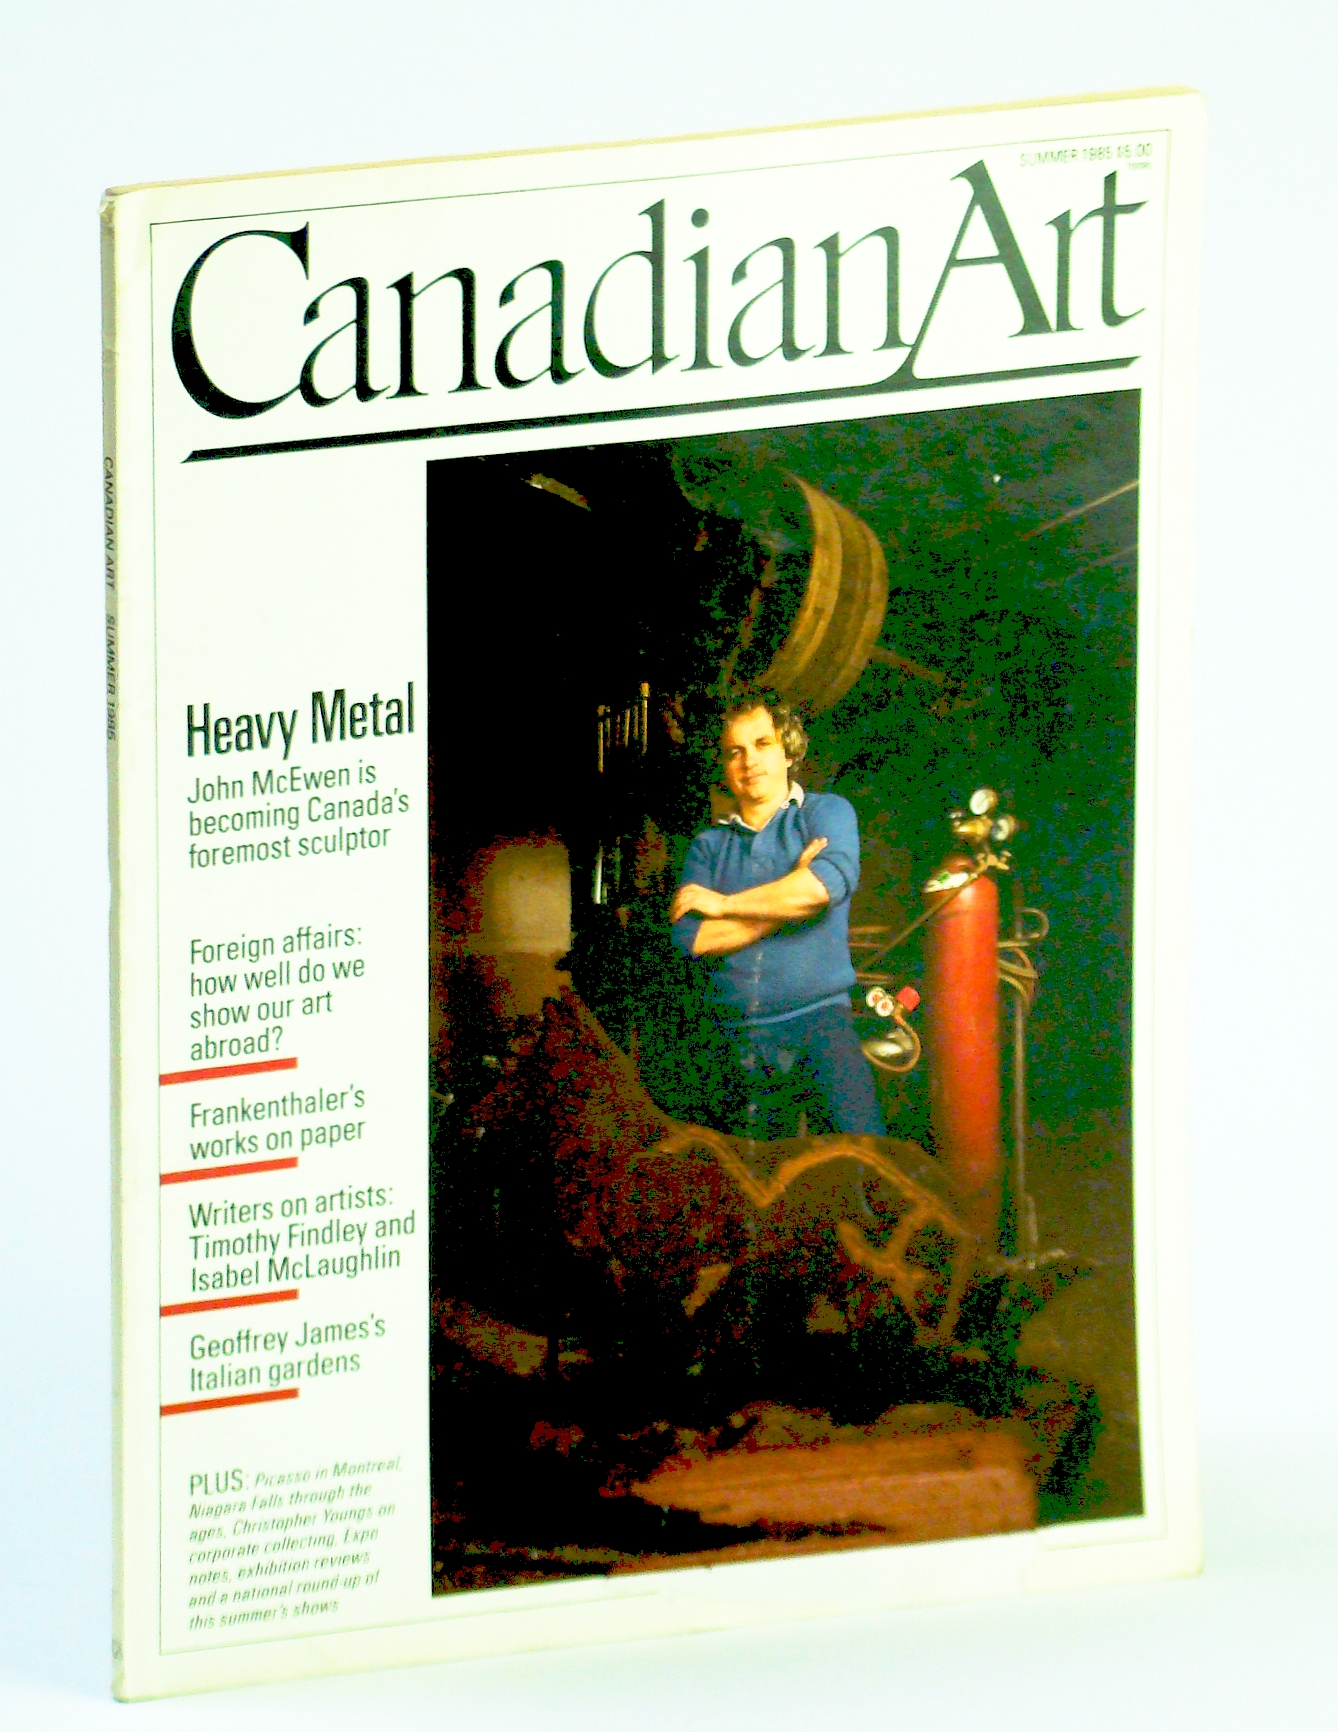 Image for Canadian Art (Magazine), Summer / June 1985, Volume 2, Number 2: Sculptor John McEwen